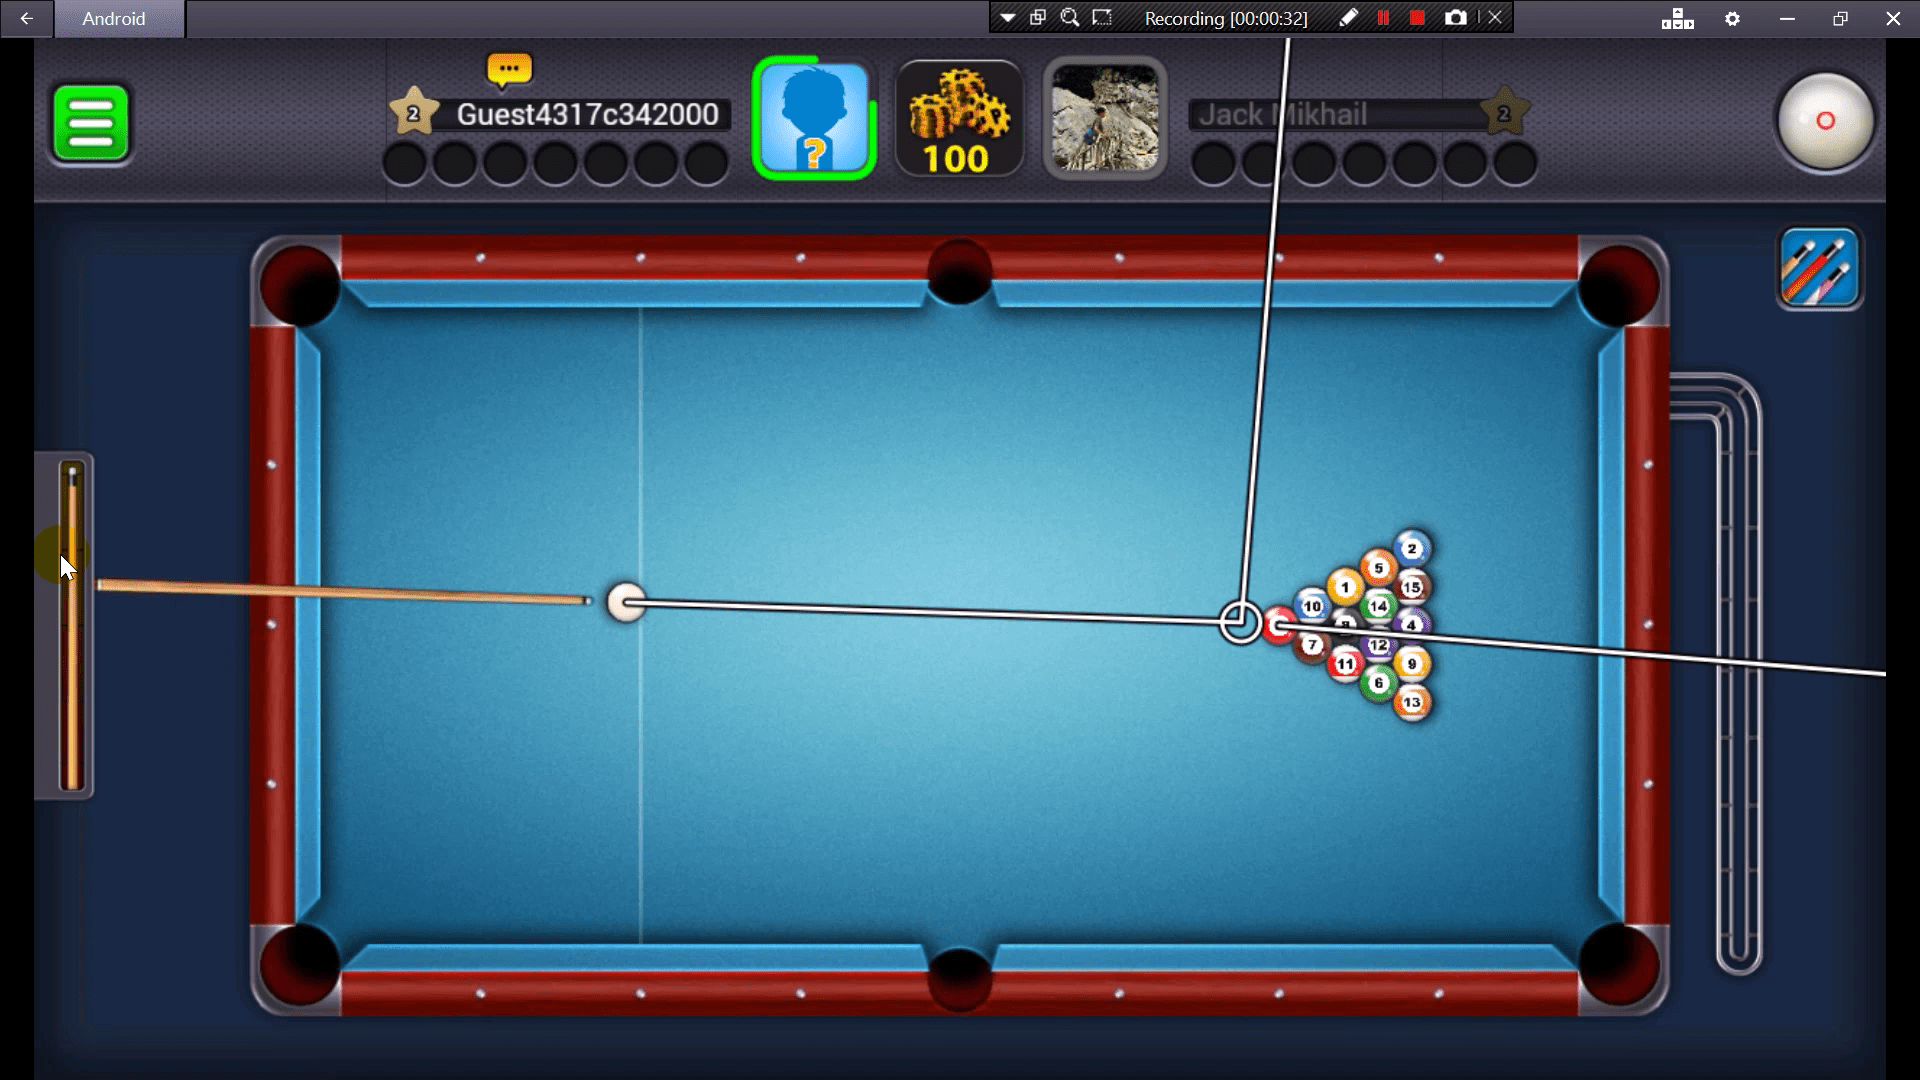 8 Ball Pool Cash Mod 8 Ball Pool Mod Apk Download 3 9 1 Latest Version For Android